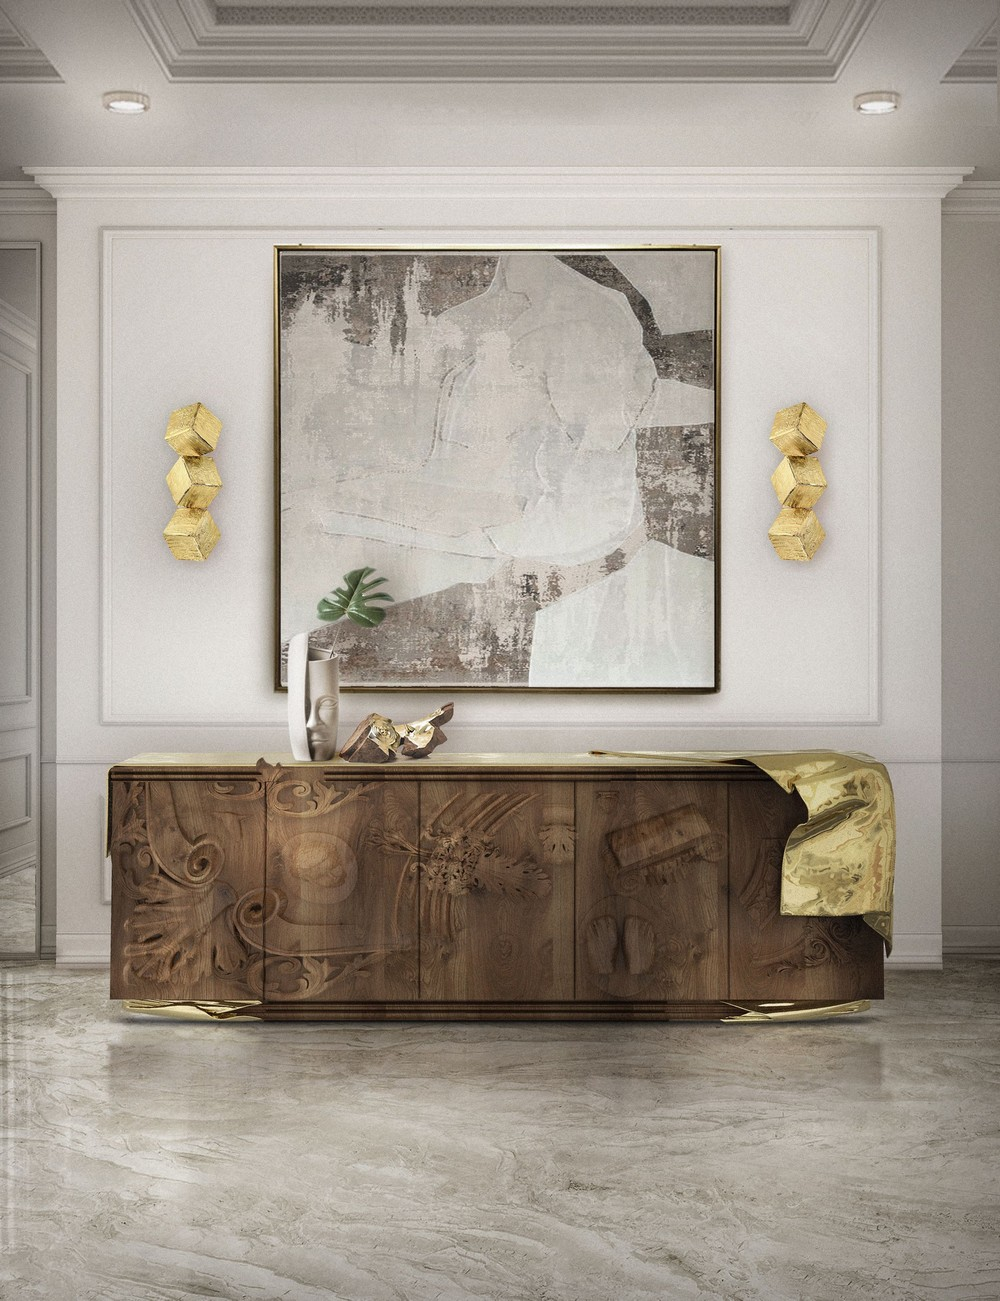 Design Inspiration: 7 Sideboards For 7 Styles sideboards Design Inspiration: 7 Sideboards For 7 Styles design inspiration sideboards for styles 1